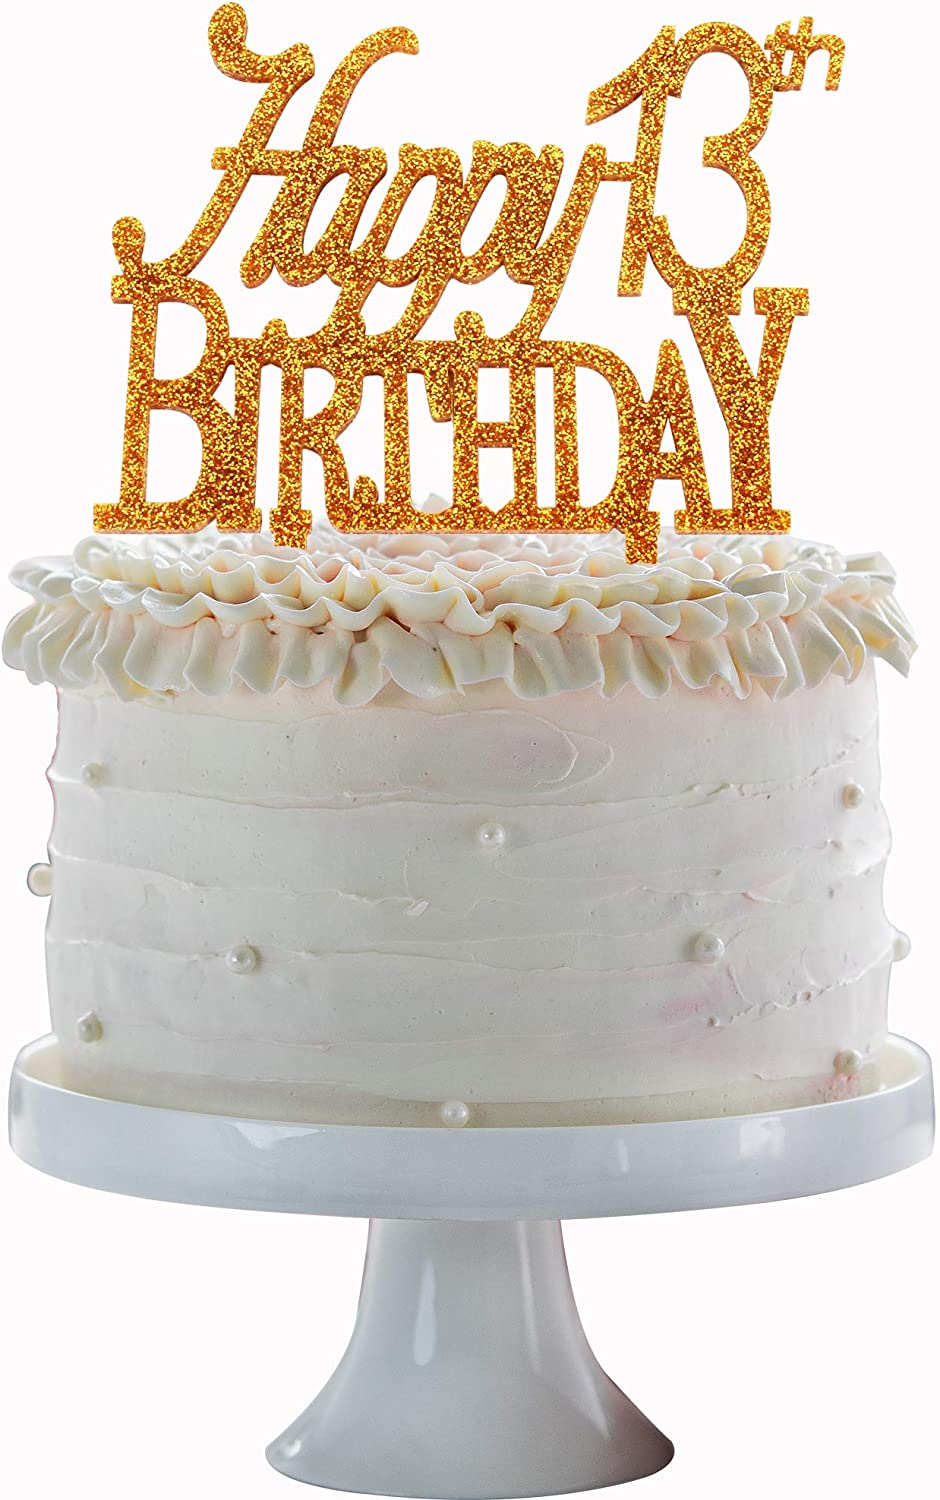 Cool Amazon Com Happy 13Th Birthday Cake Topper Gold Acrylic Cake Personalised Birthday Cards Veneteletsinfo